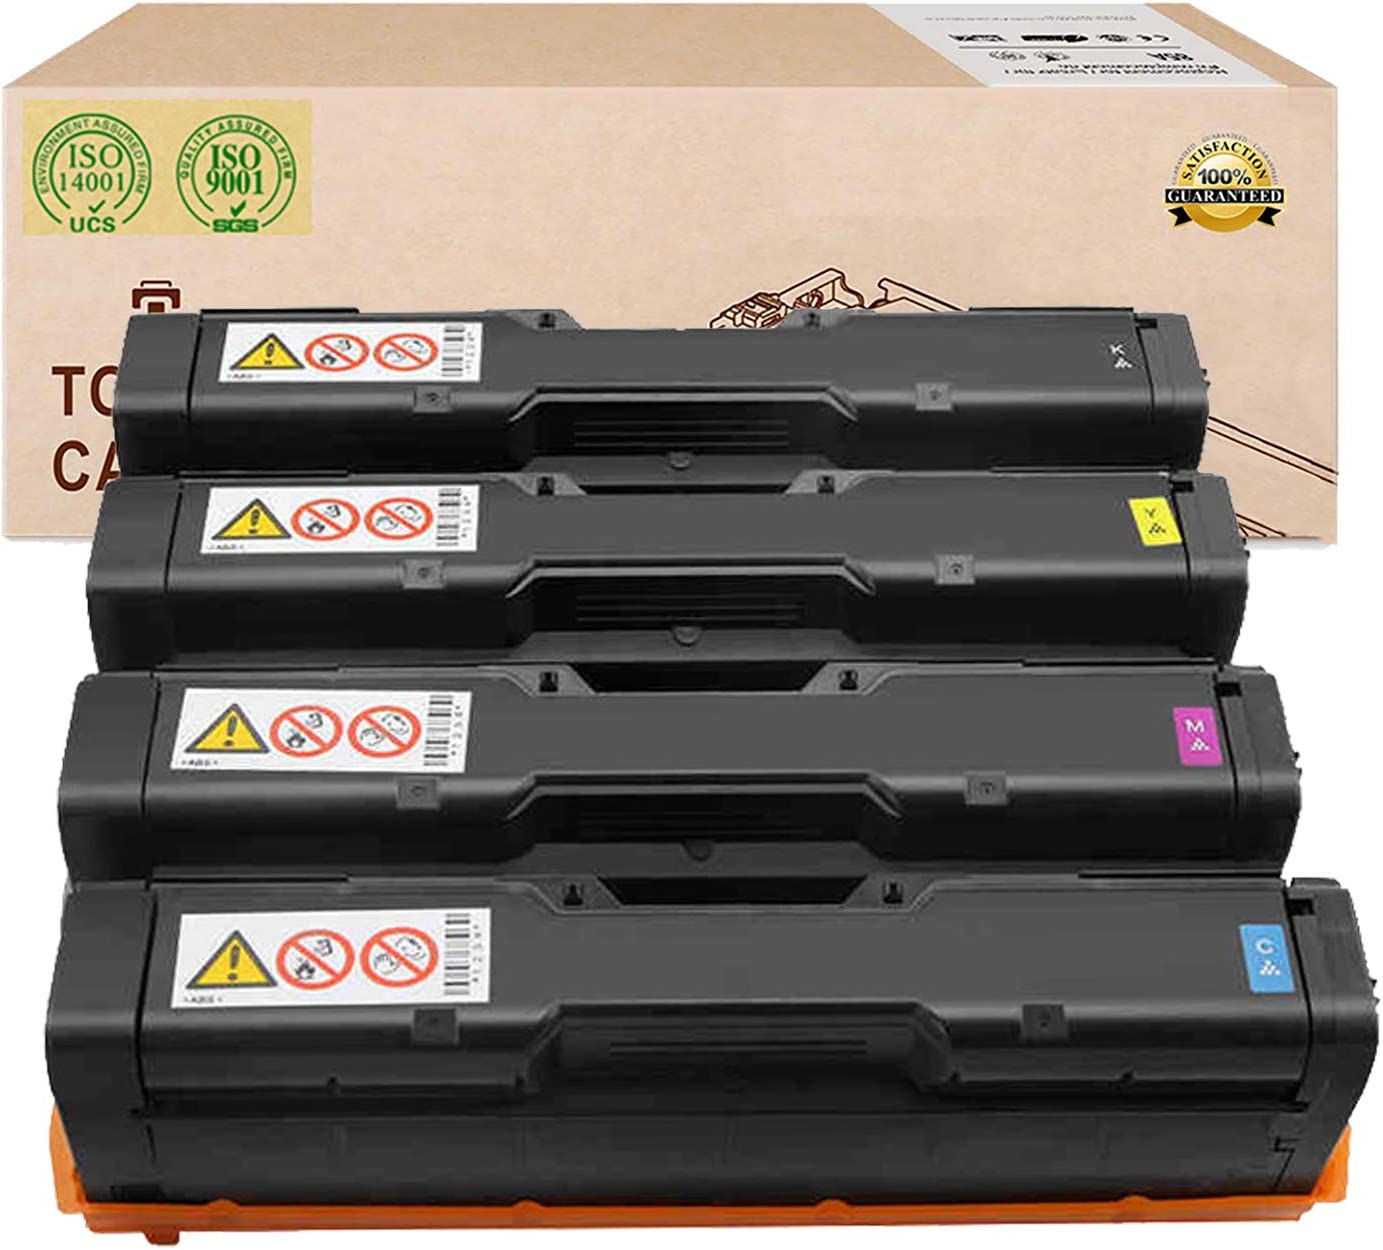 Compatible Toner Cartridges Replacement for RICOH SPC252DN 407561 407562 407563 407564 Toner Cartridges for RICOH Docucentre SPC252DN 252SF SPC262DNW SPC262SFNW Laser Printer,4color